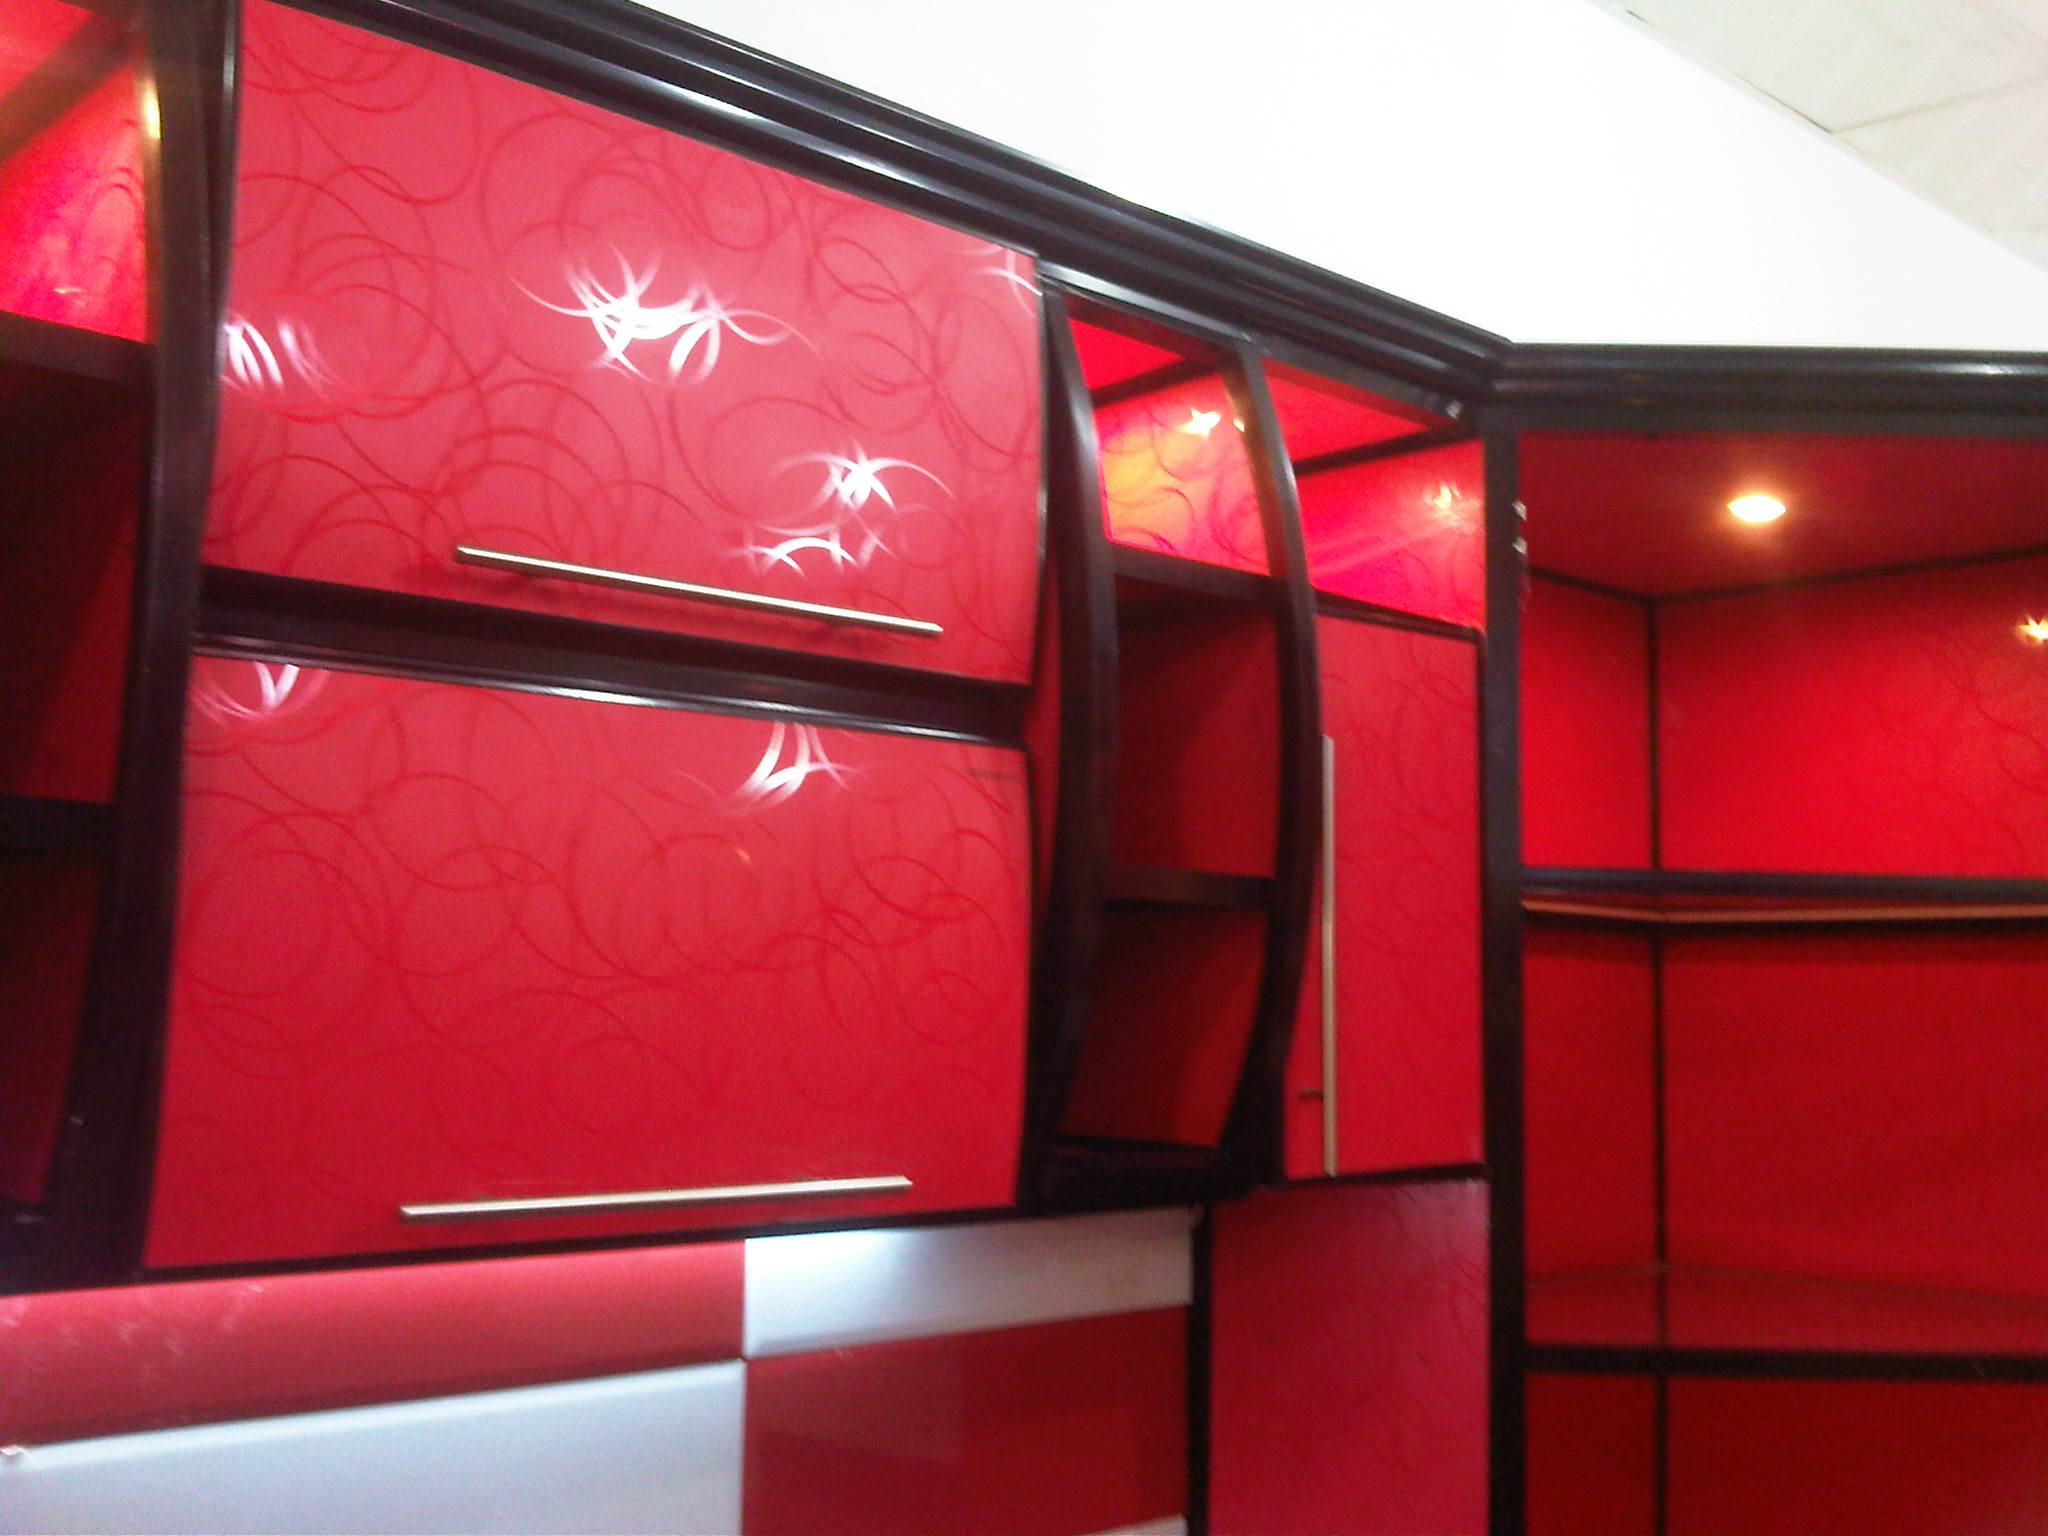 Uaeshops Red And Black Aluminum Kitchen Cabinets By Adriatic Kitchens The Largest Shop Database In Uae